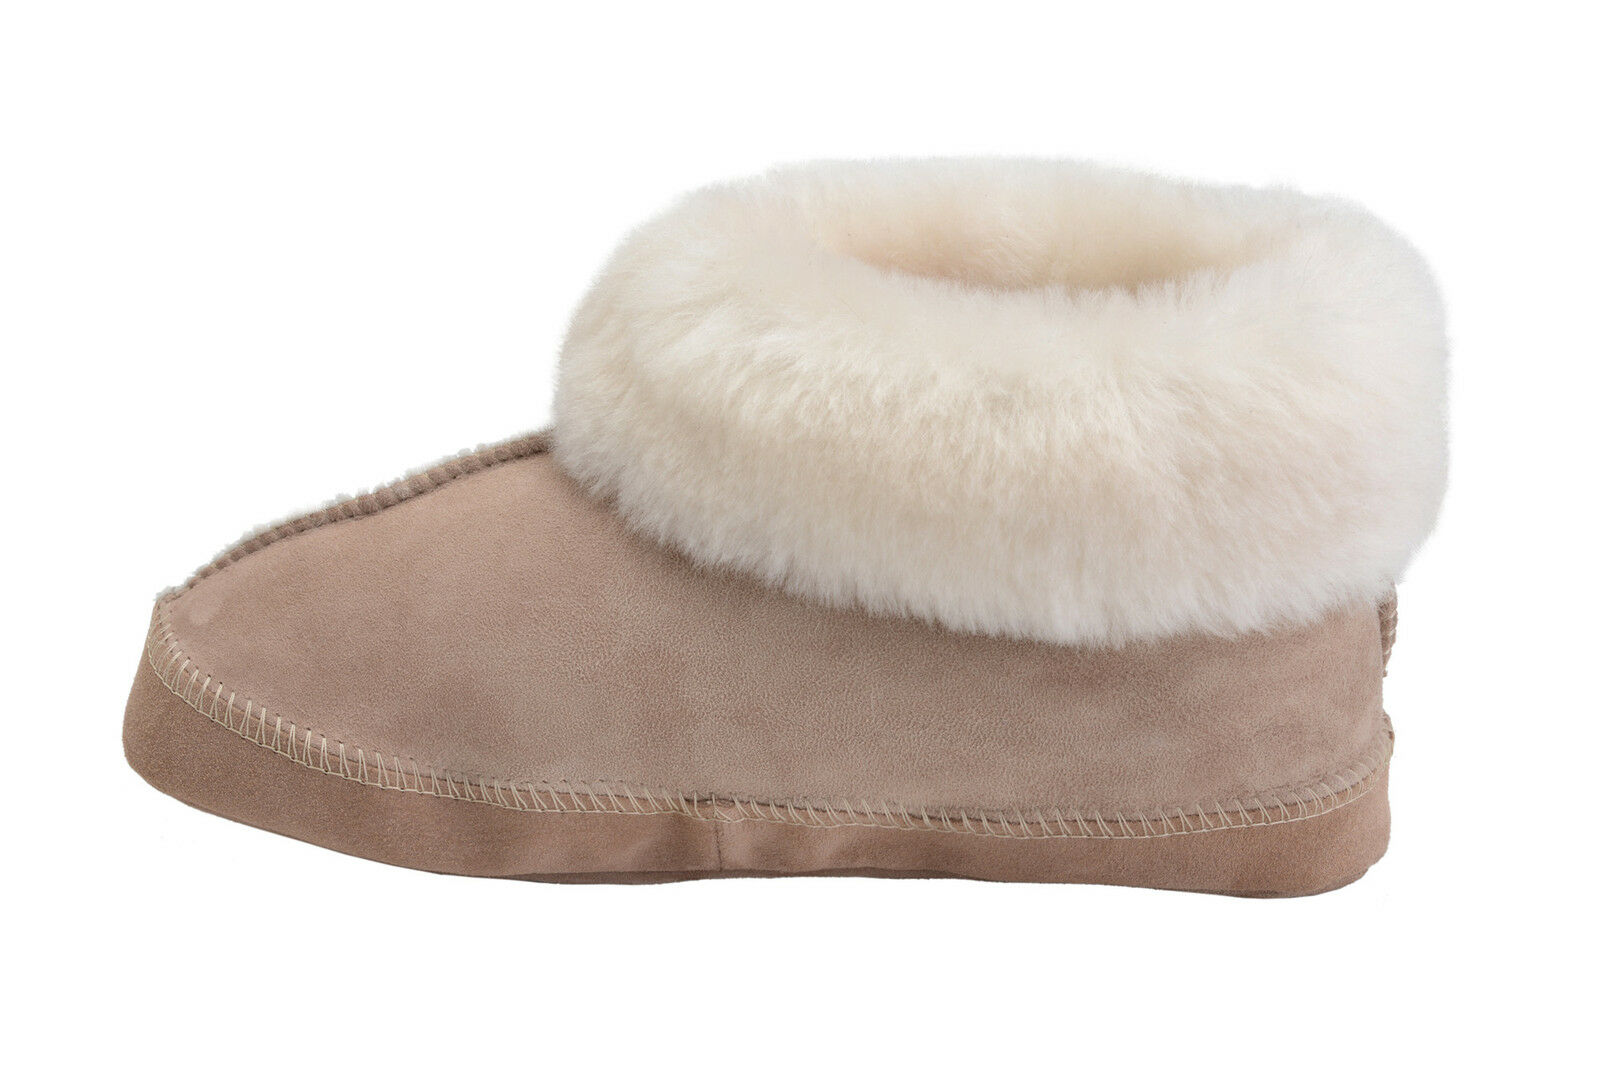 New Mens Womens Sheepskin Ankle Boot Slippers Leather Booties shoes UK Size 3-10